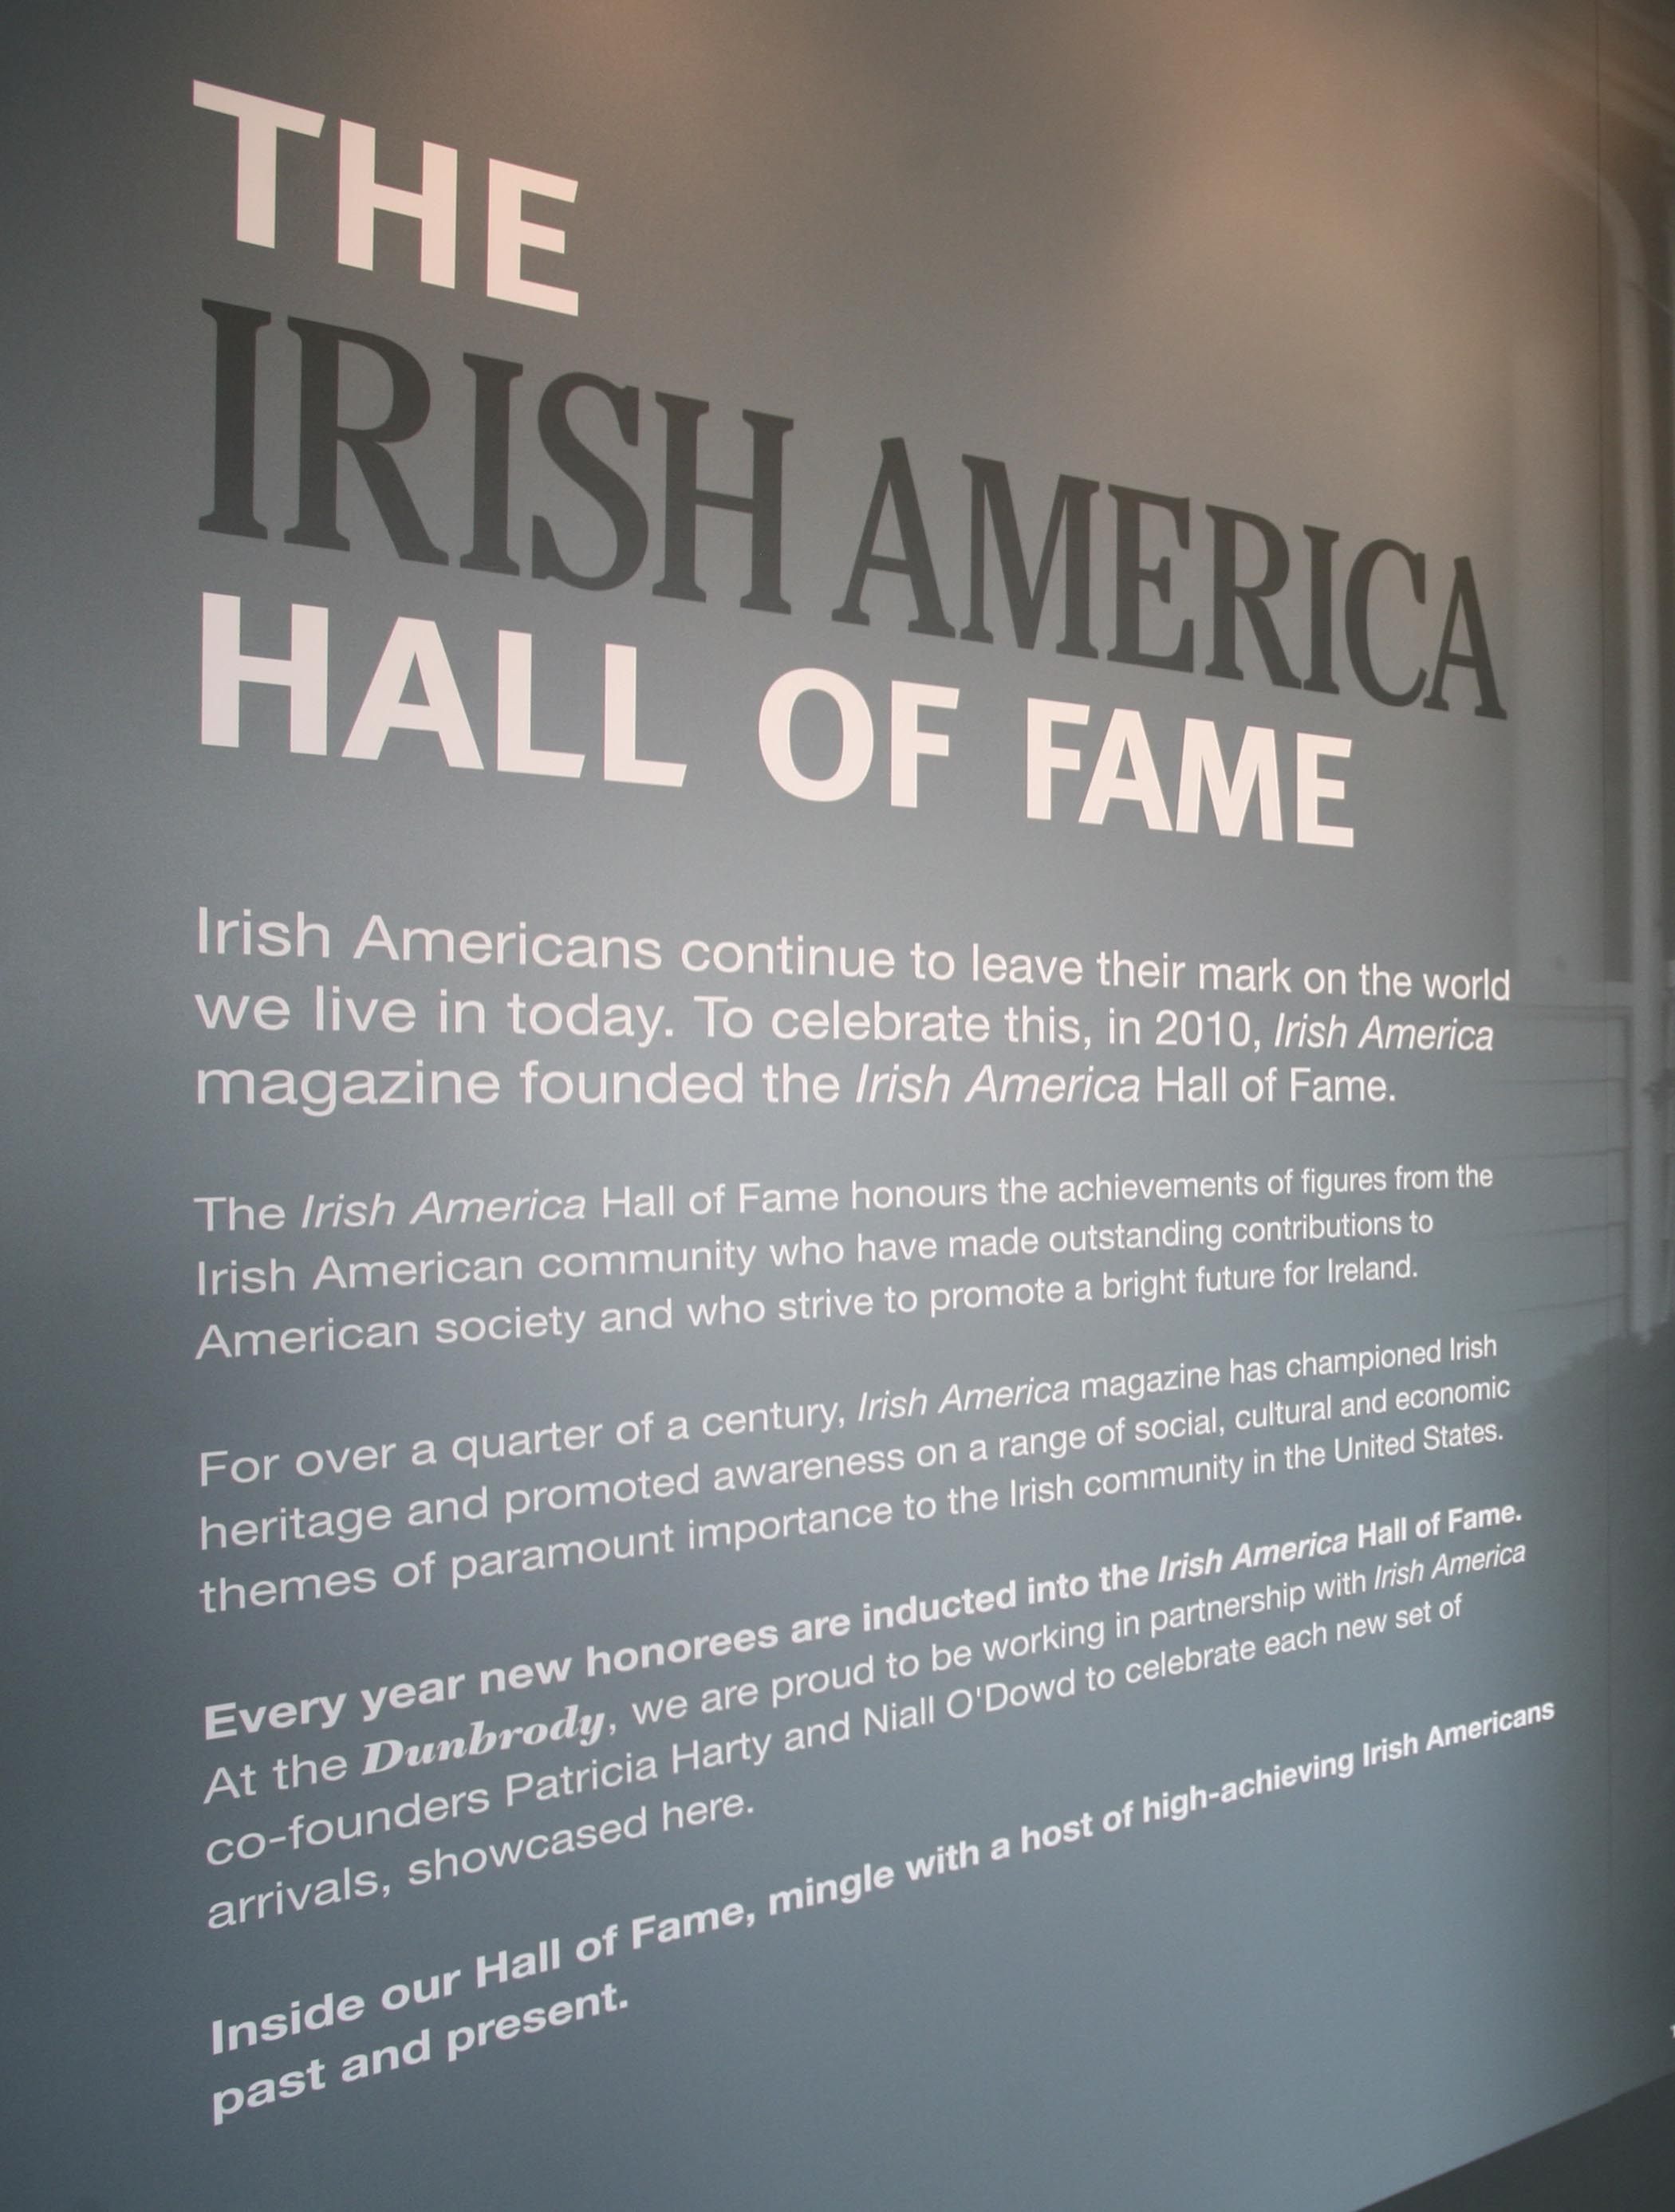 The Irish America Hall of Fame